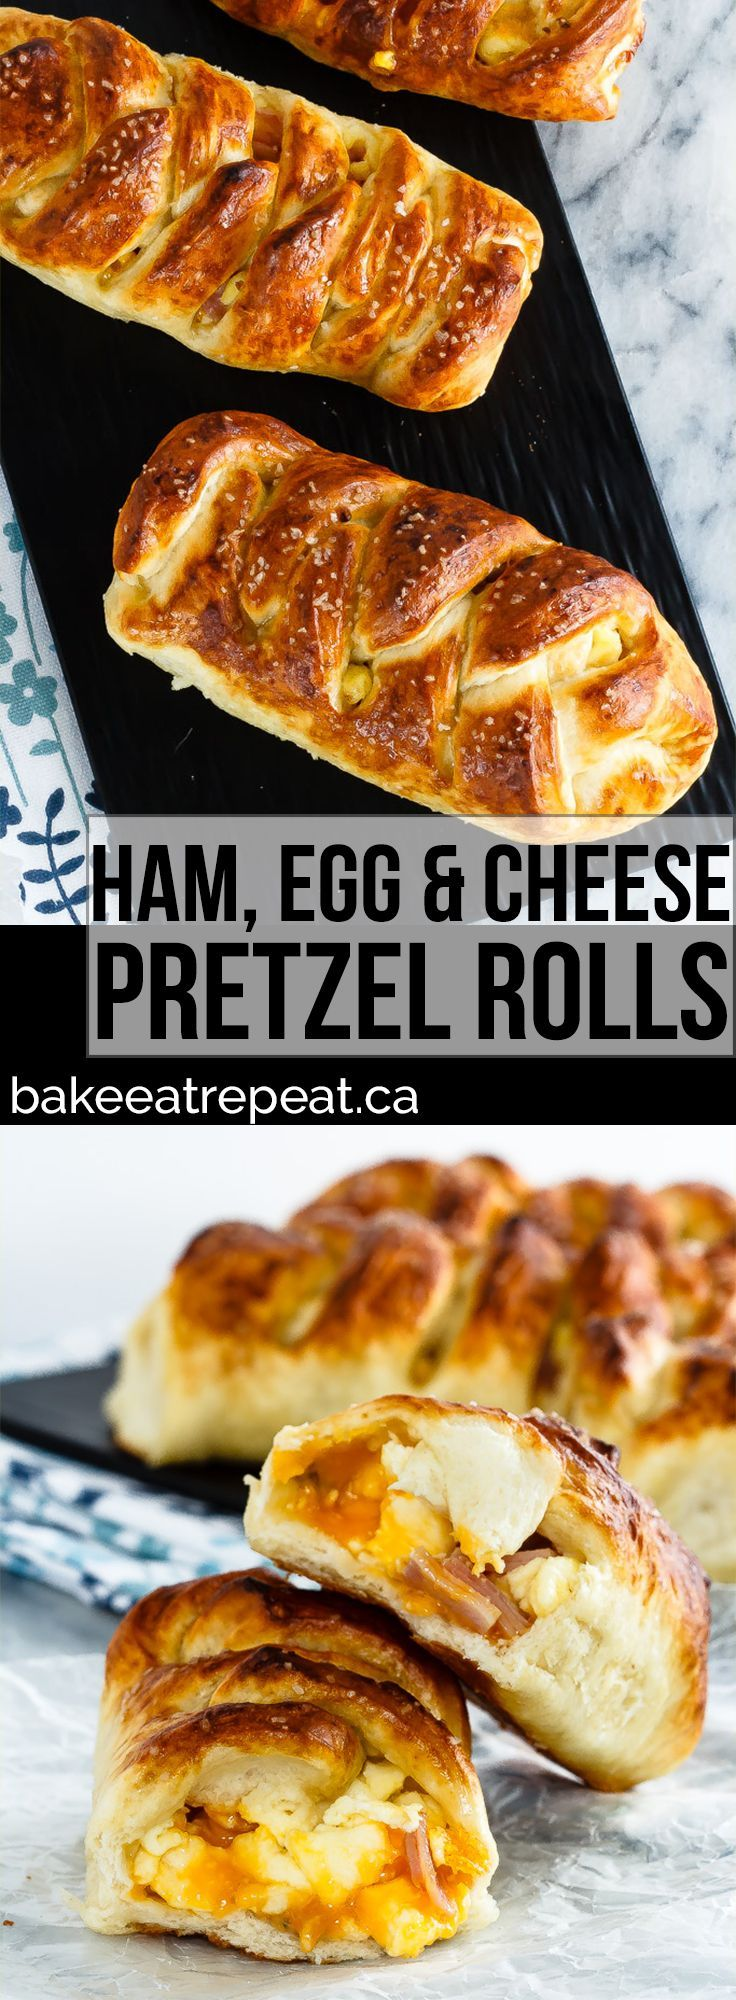 These braided ham, egg and cheese pretzel rolls are the perfect hand held meal. Plus they're easy to take along with you for breakfast or lunch on the go!